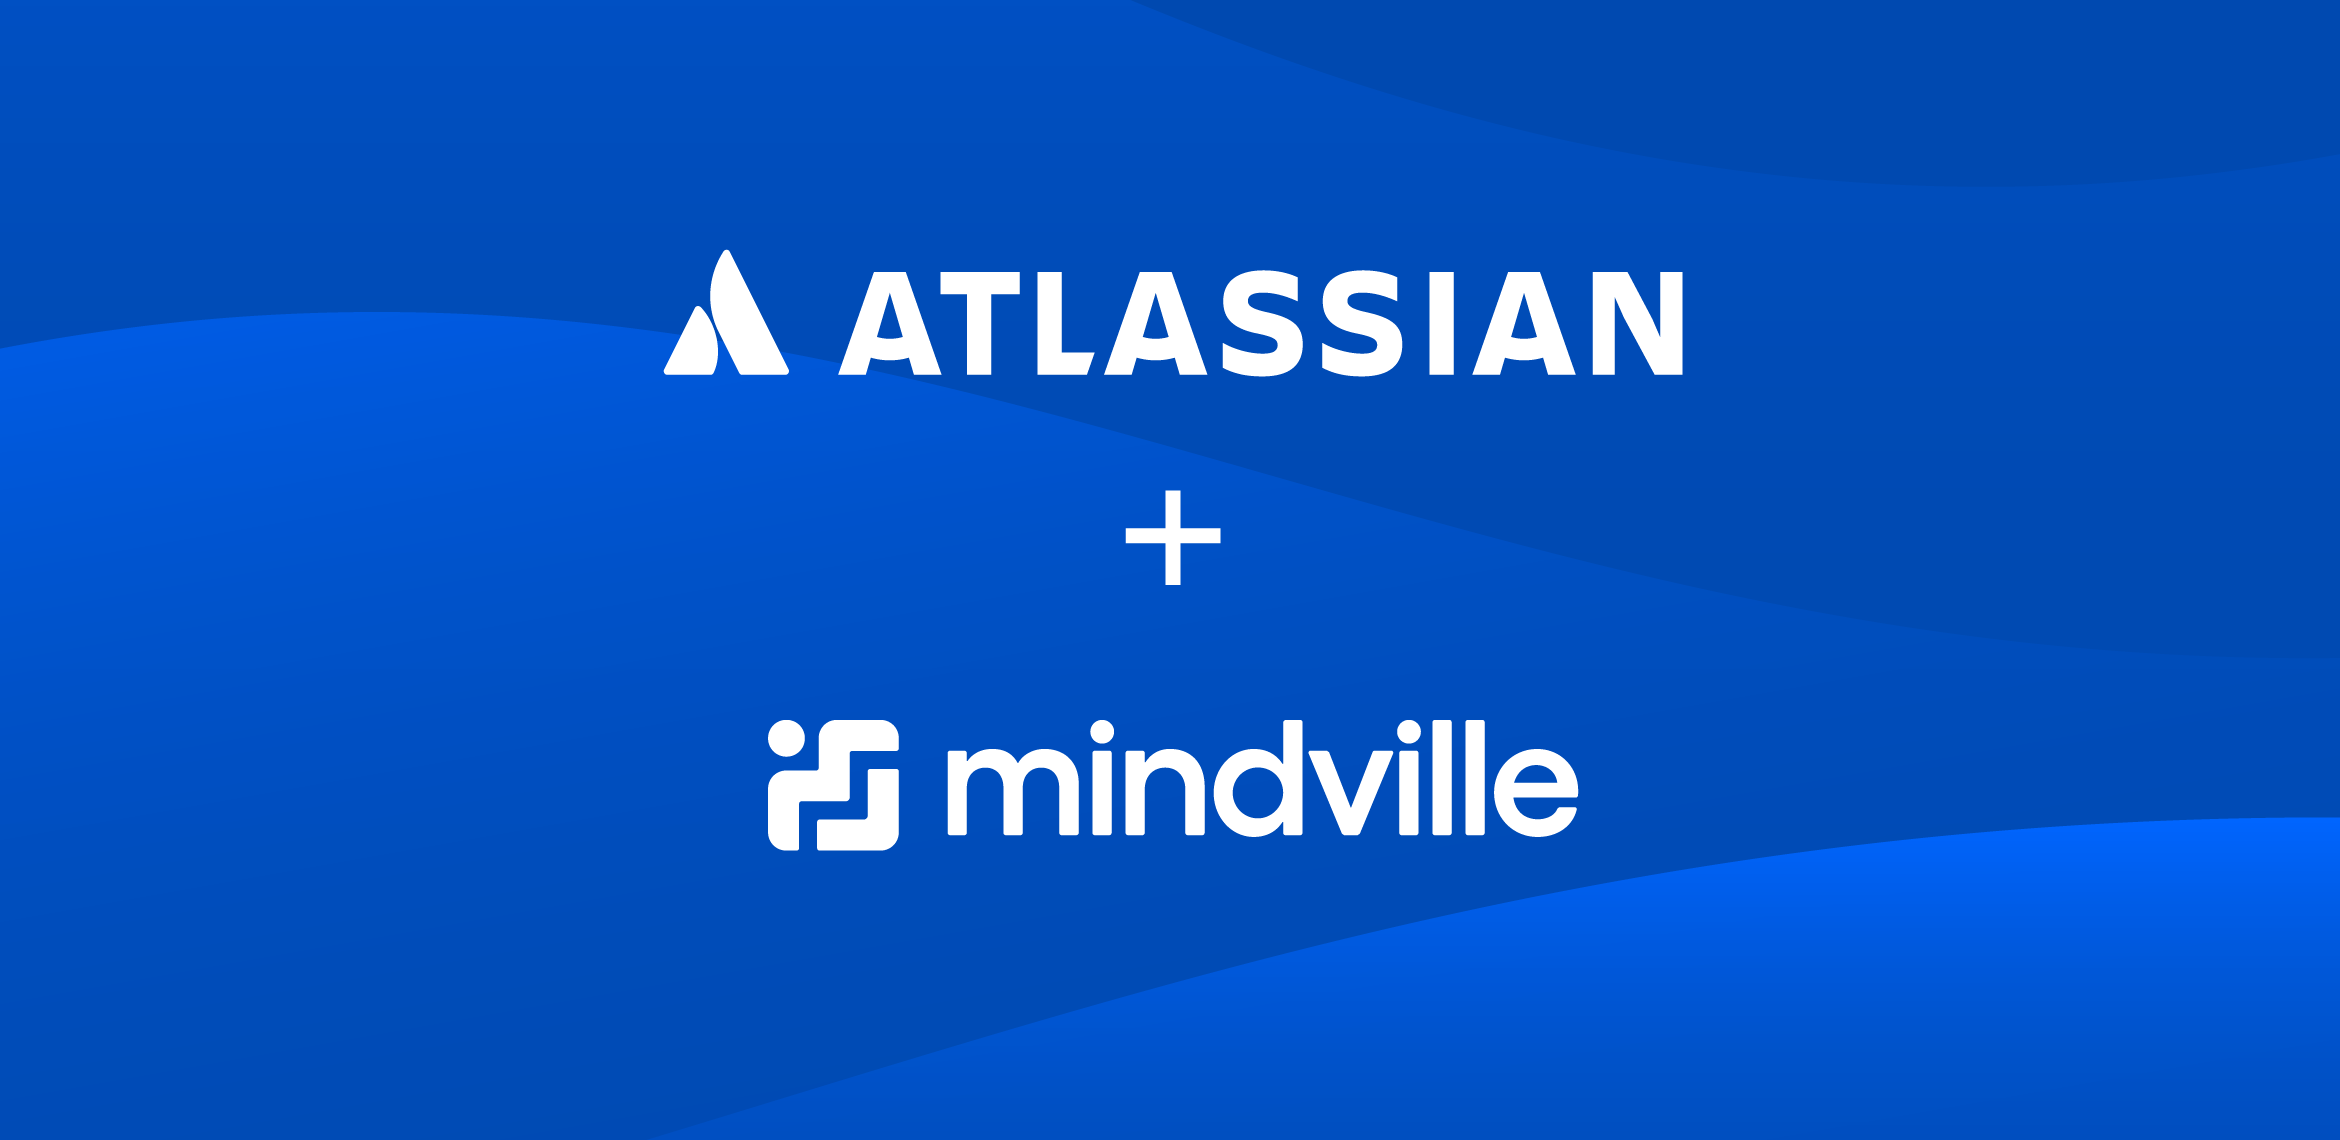 Announcing our acquisition of Mindville